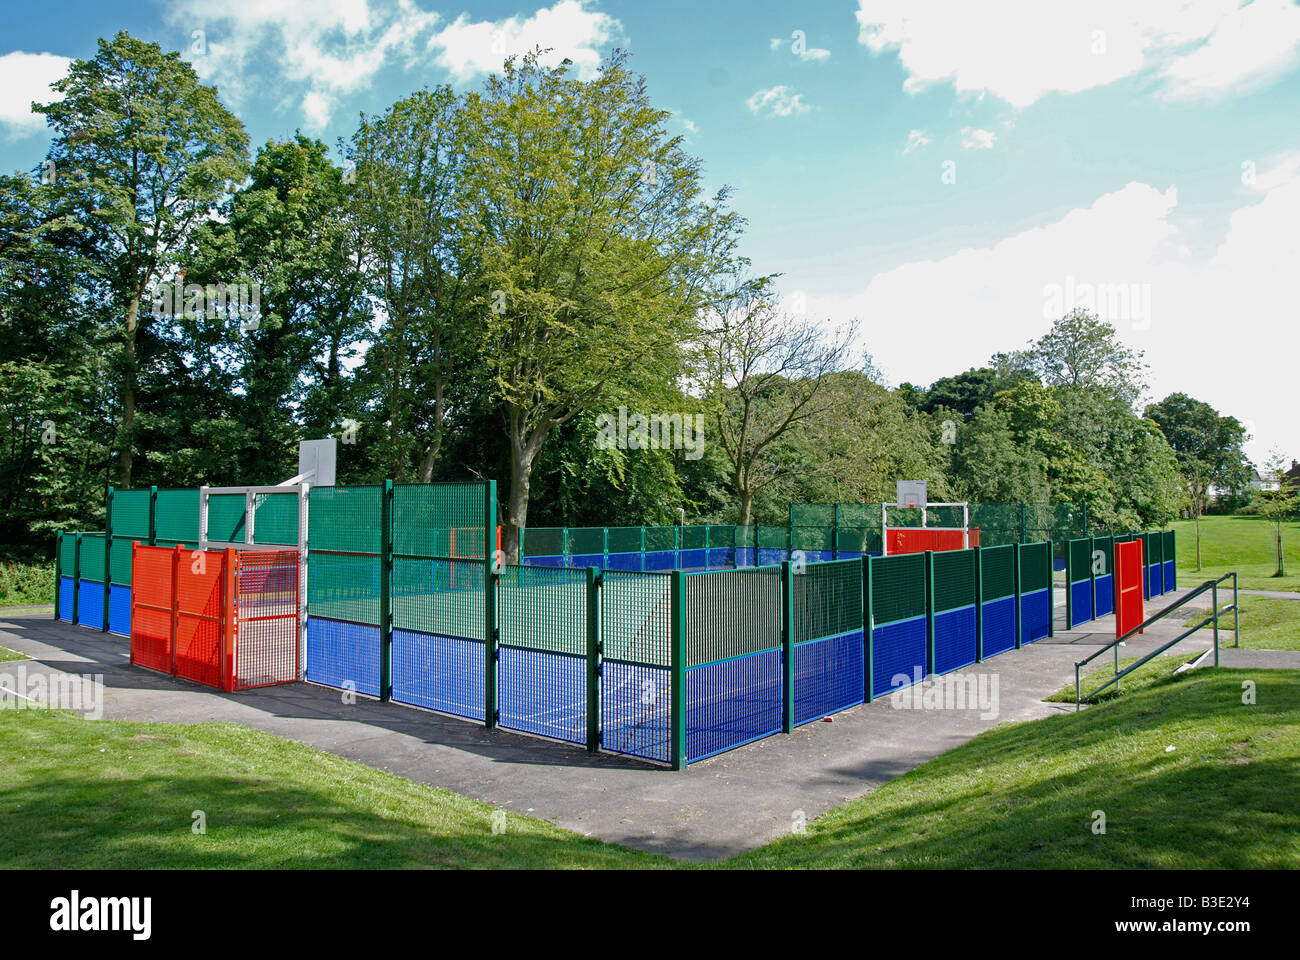 an enclosed sports pitch in taylor park,st.helens,merseyside,uk - Stock Image